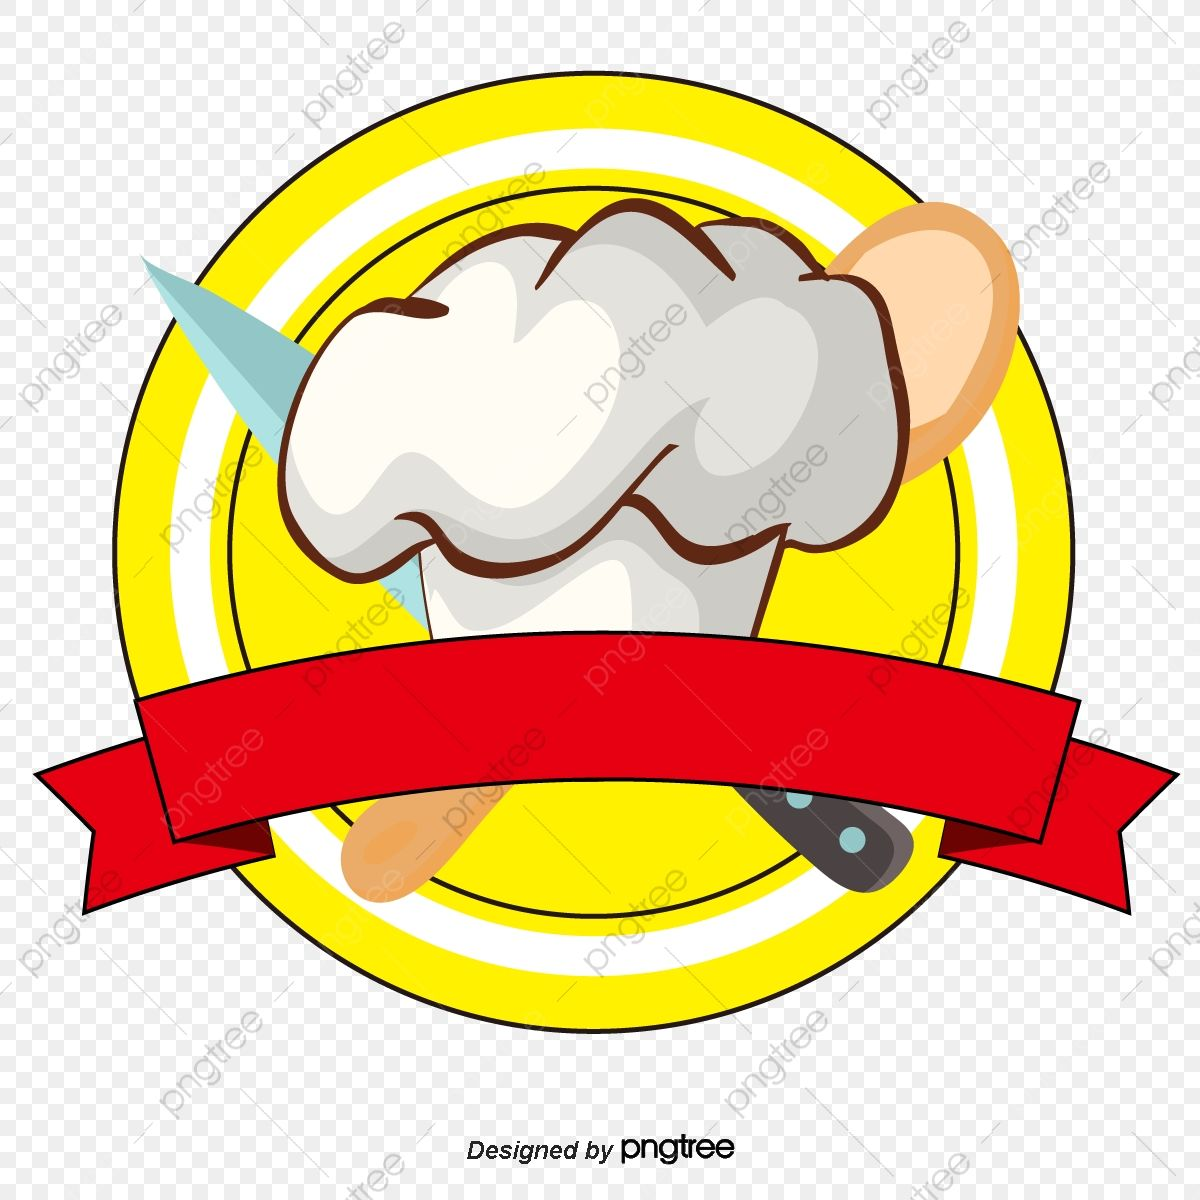 Vectorand Chef S Hat Chef Hat Clipart Pizza Chef Hat Png And Vector With Transparent Background For Free Download Chefs Hat Chef Logo Logo Design Free Templates